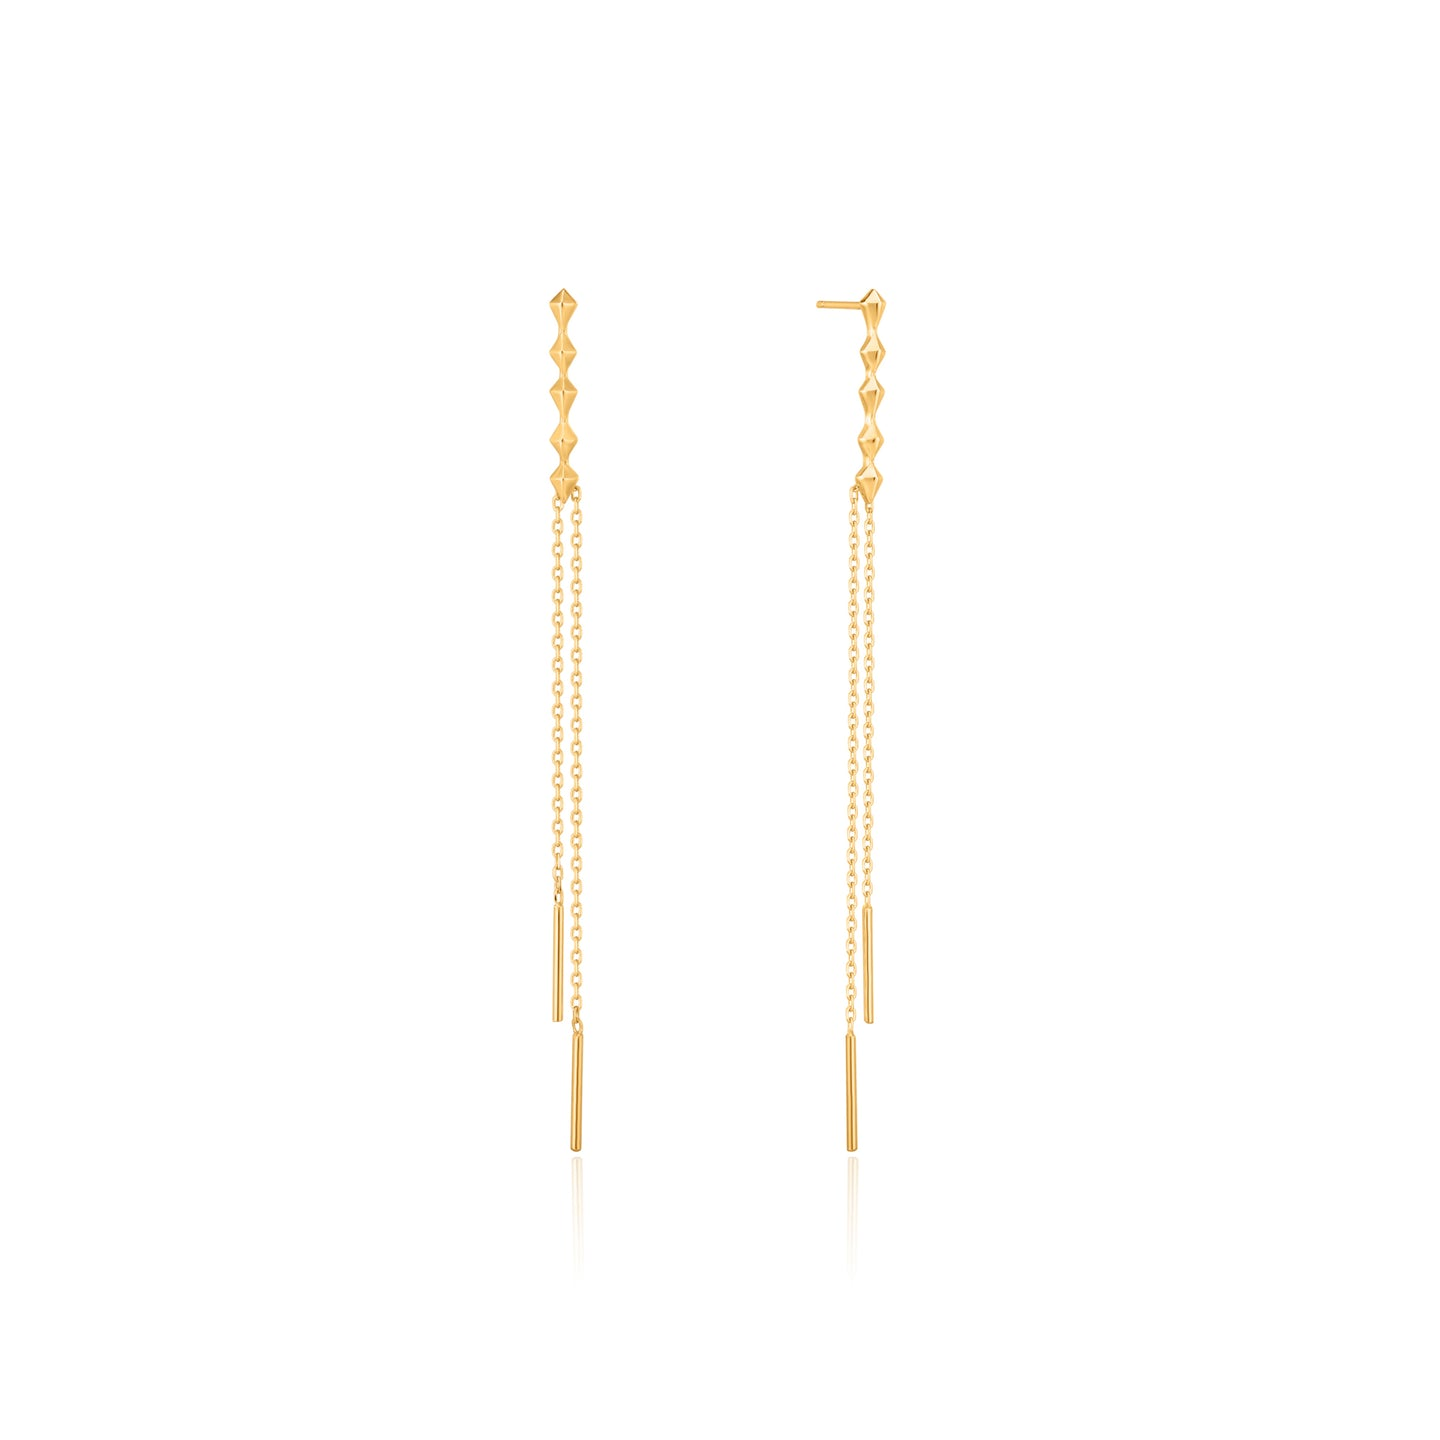 Gold Spike Double Drop Earrings E025-01G